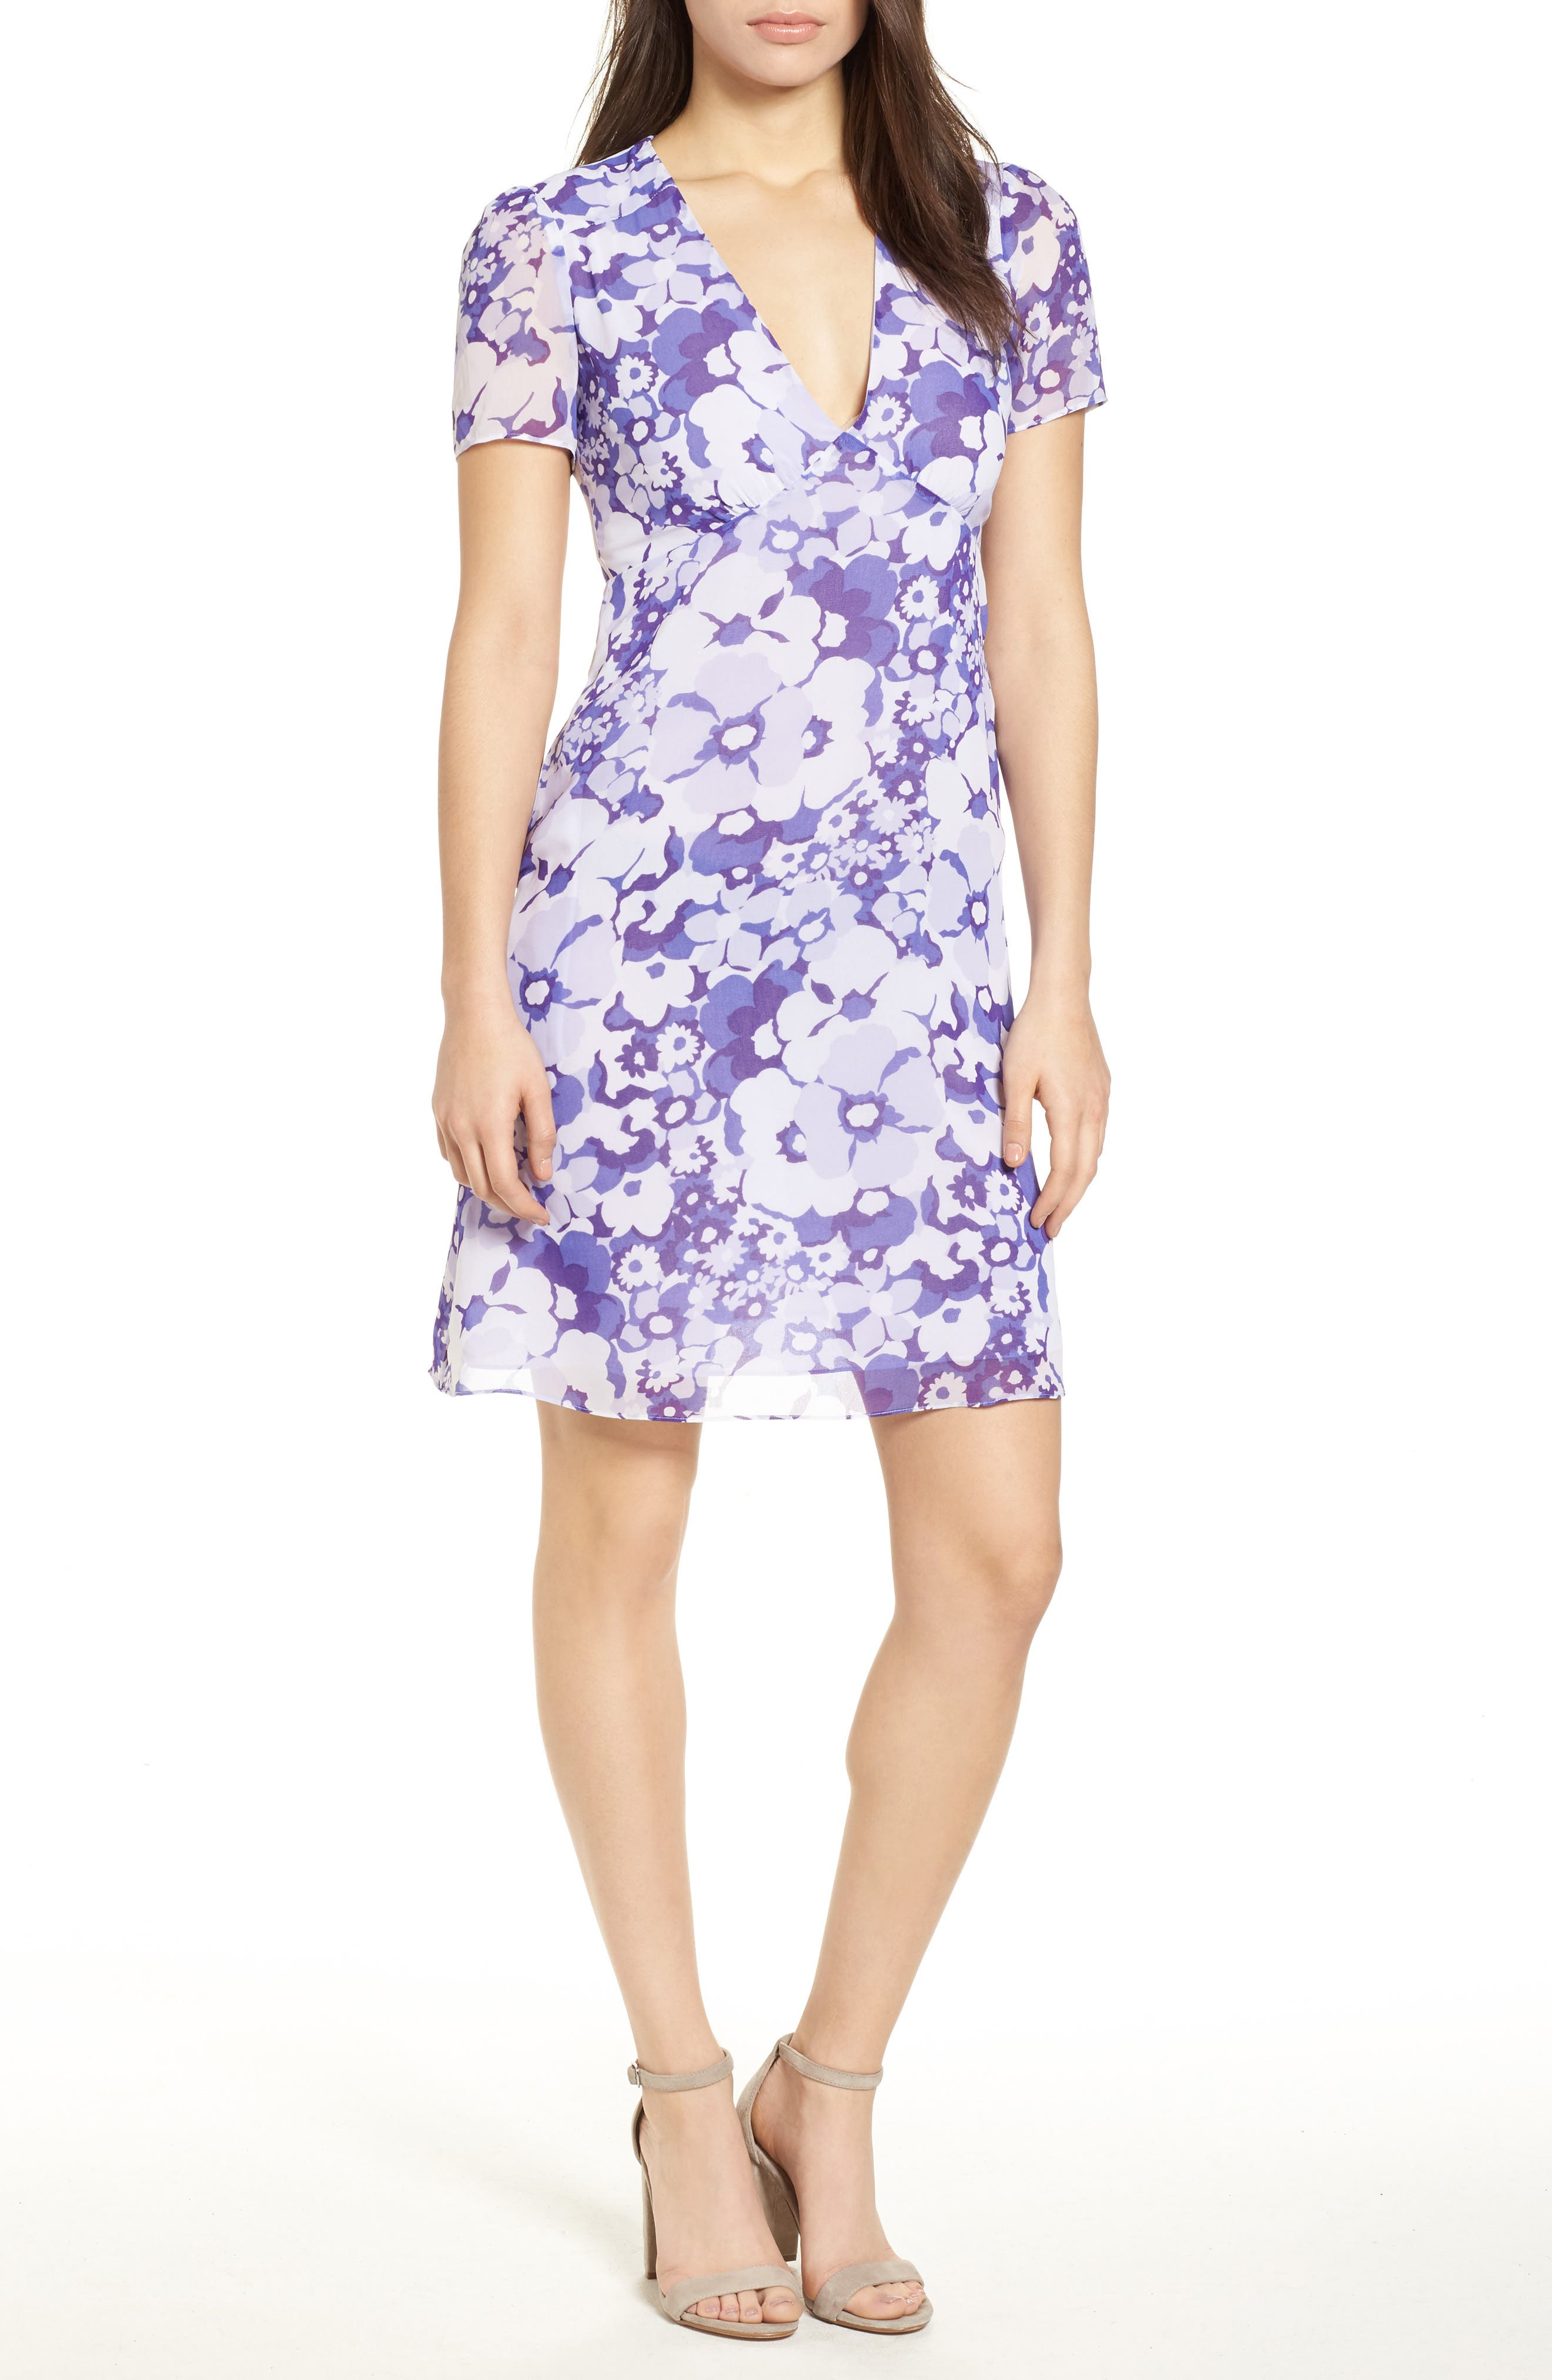 Springtime Floral Dress,                         Main,                         color, Amethyst/ Light Quartz Multi